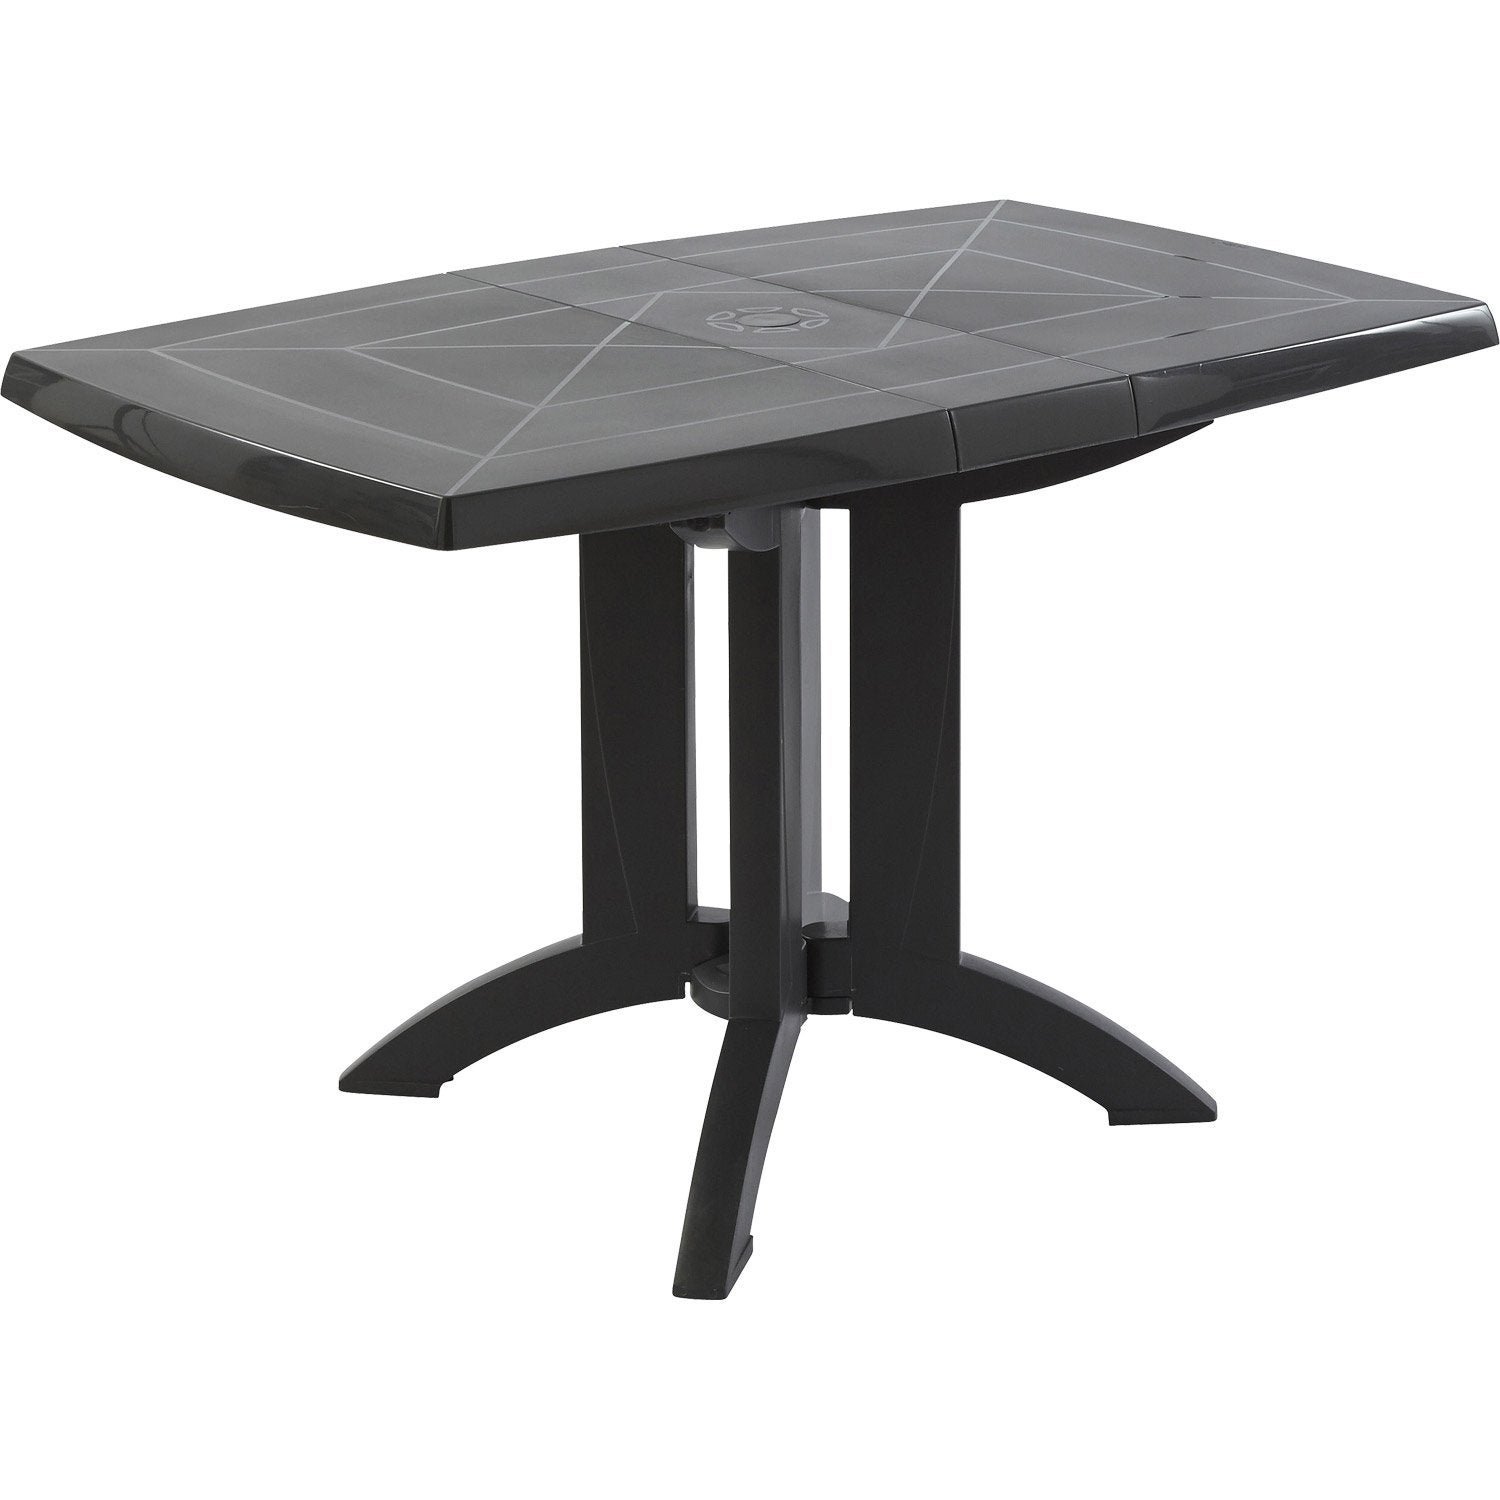 Table de jardin grosfillex v ga rectangulaire anthracite 4 for Table de jardin exterieur pas cher